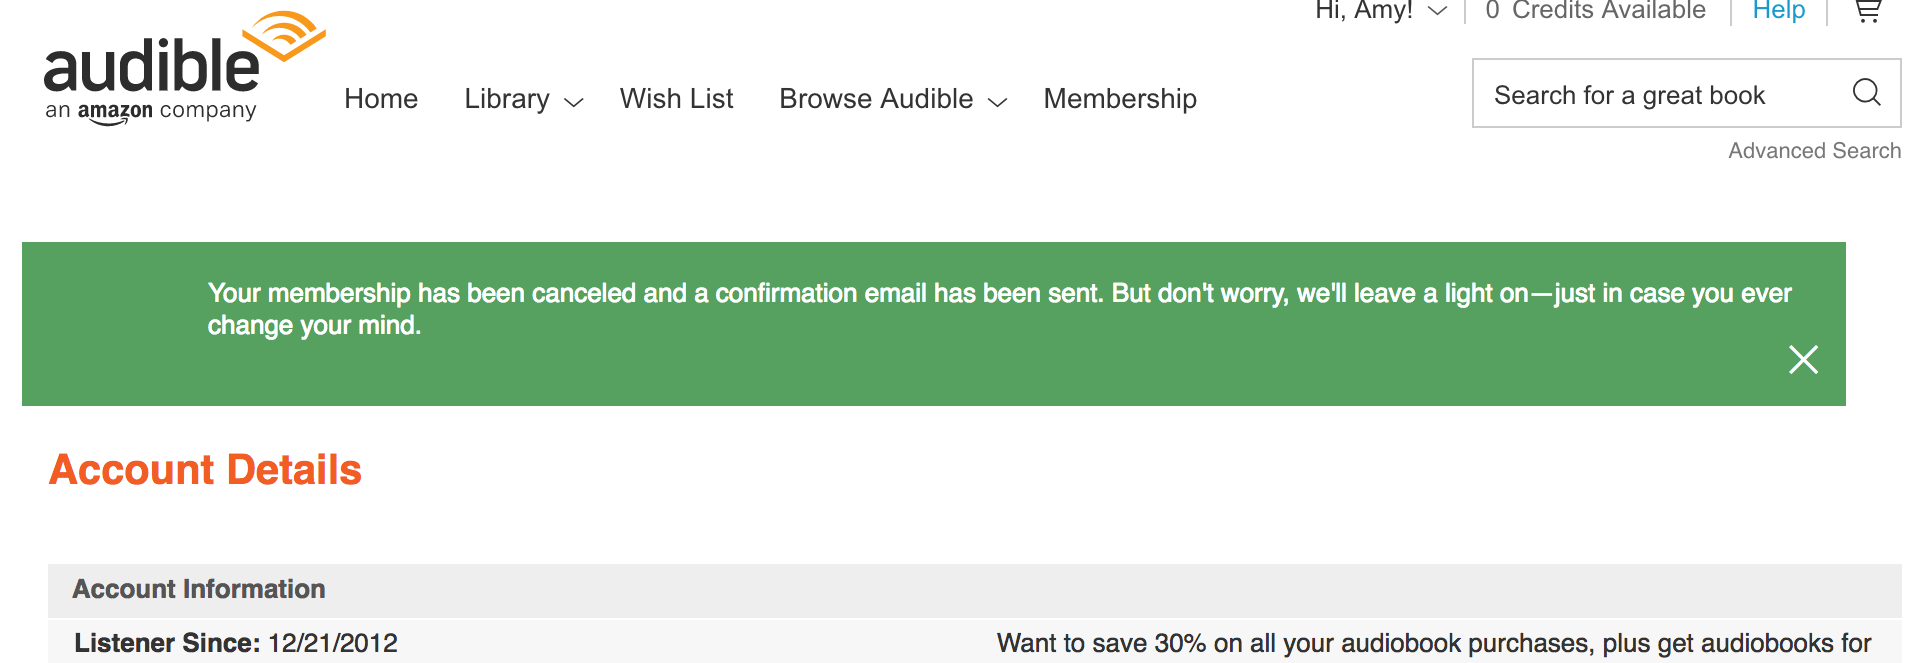 Cancellation confirmation message from Audible